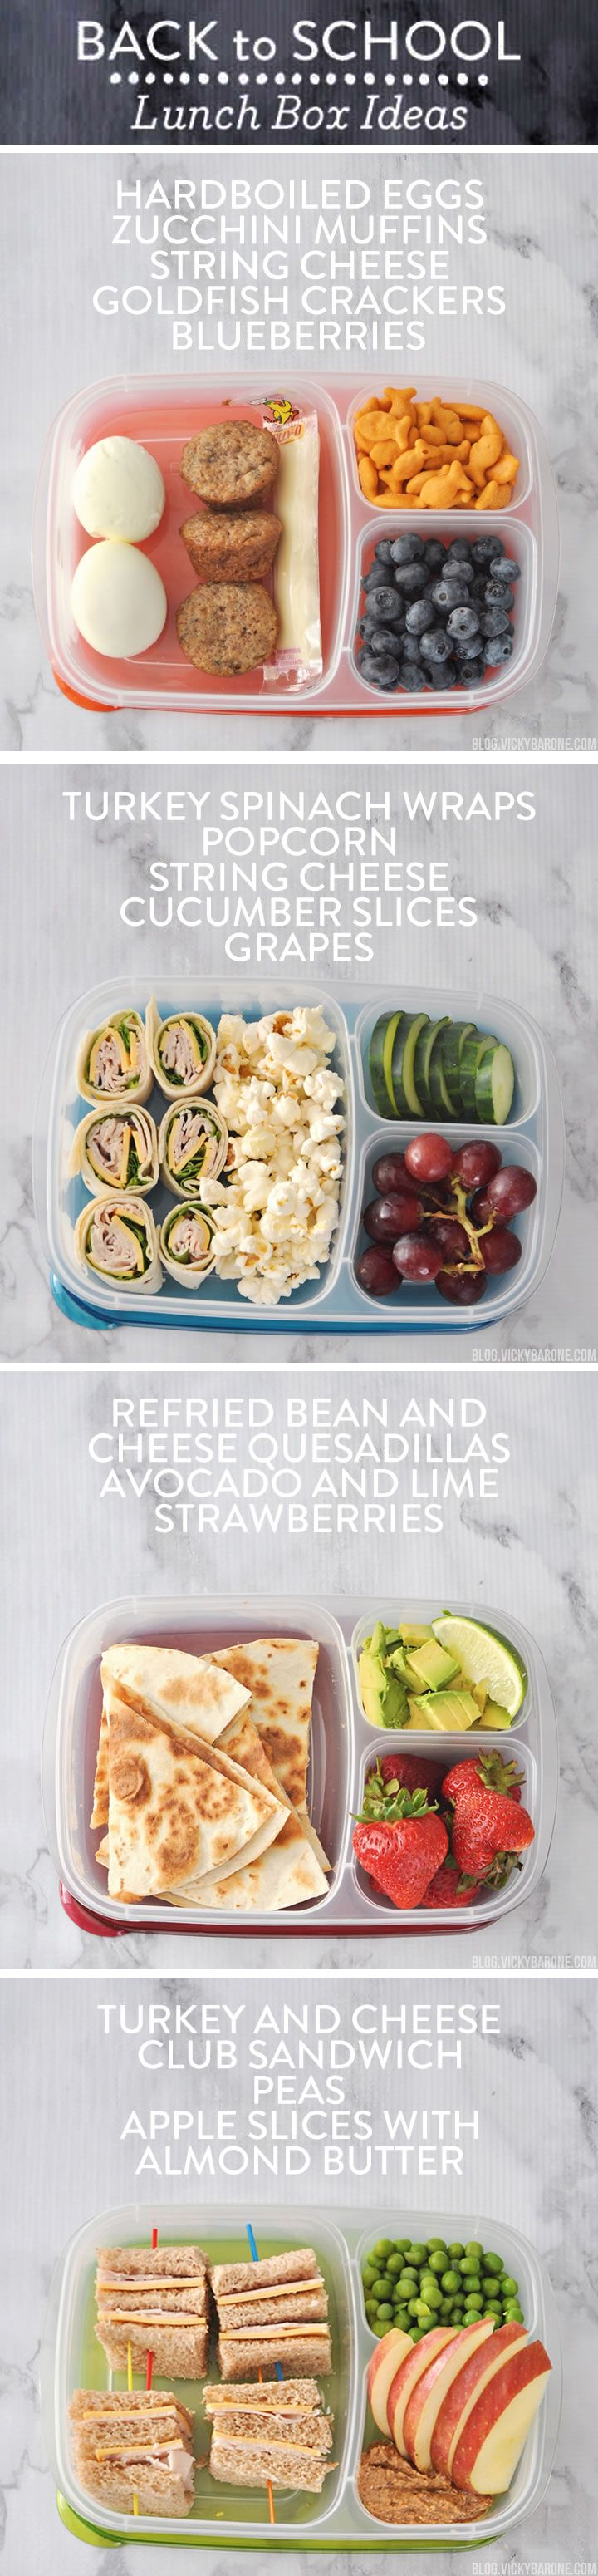 back to school lunch box ideas | favorite recipes | pinterest